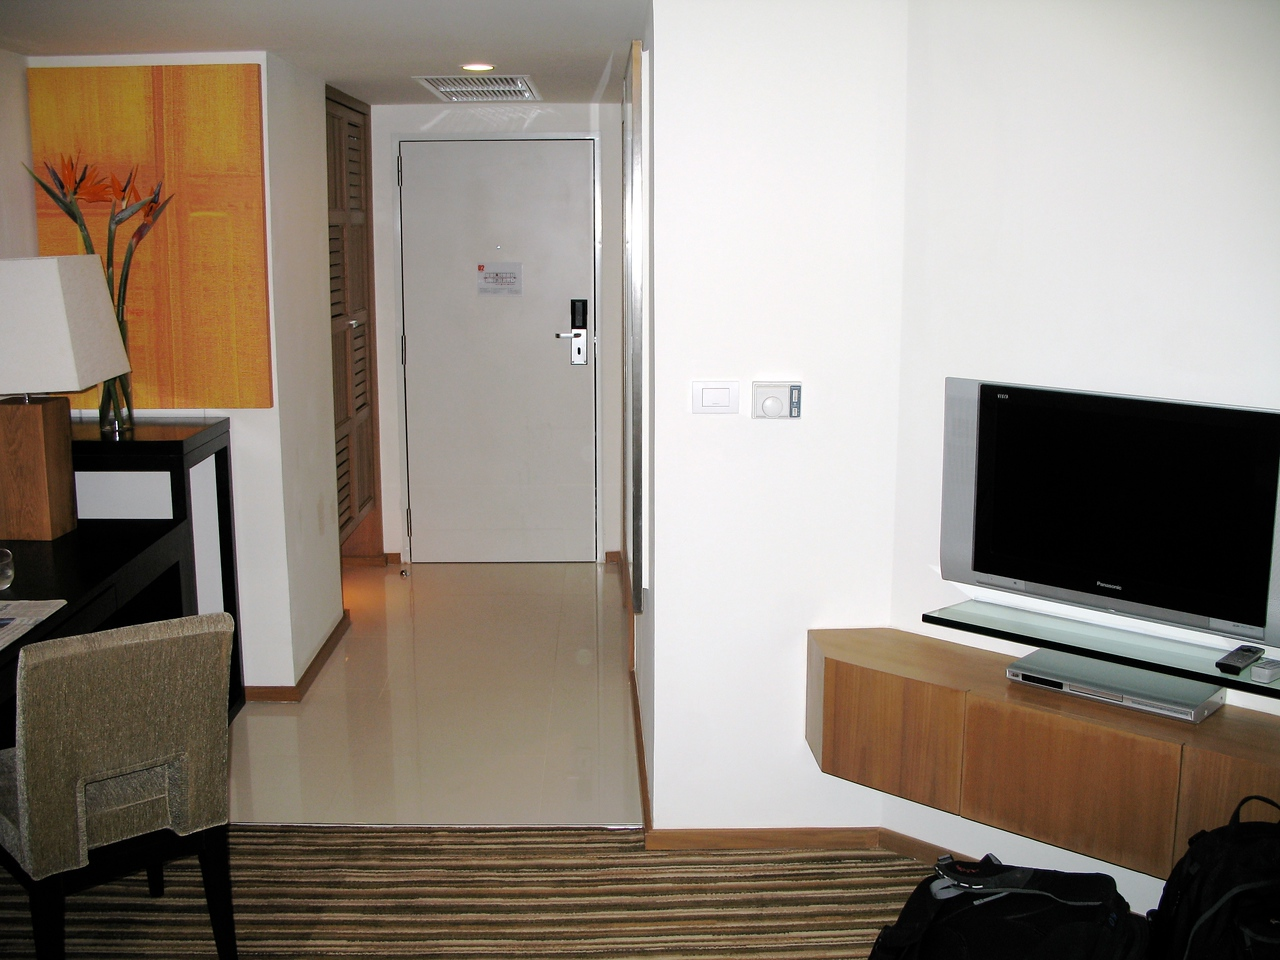 Each room comes with two flat panel televisions.  One in the bedroom area and one in the living area.